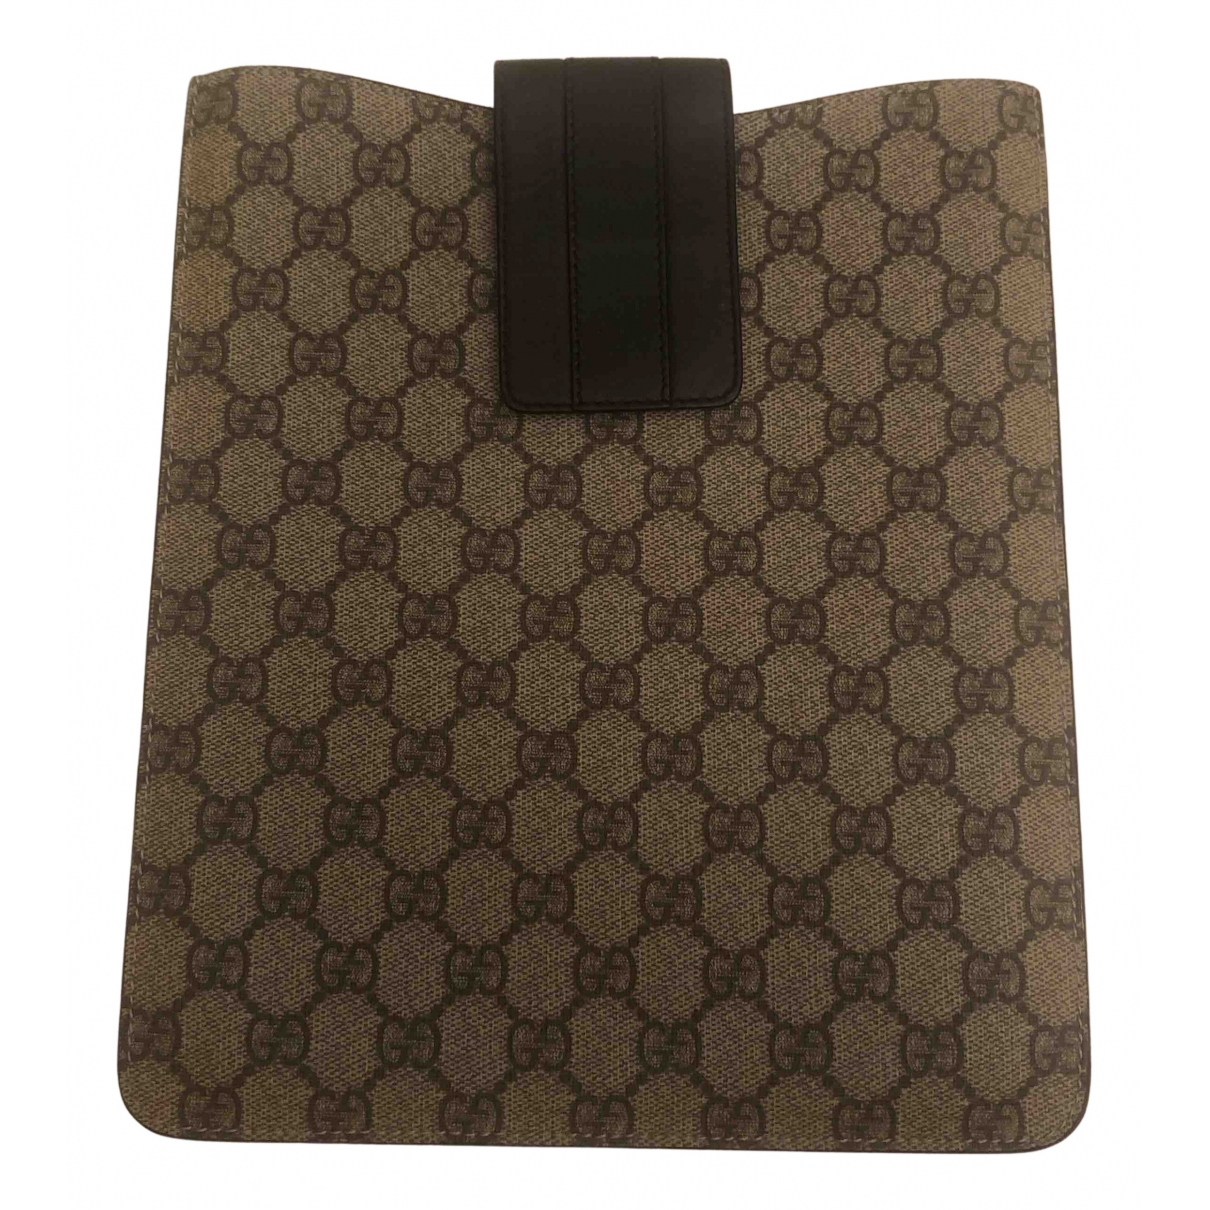 Gucci N Brown Cloth Accessories for Life & Living N